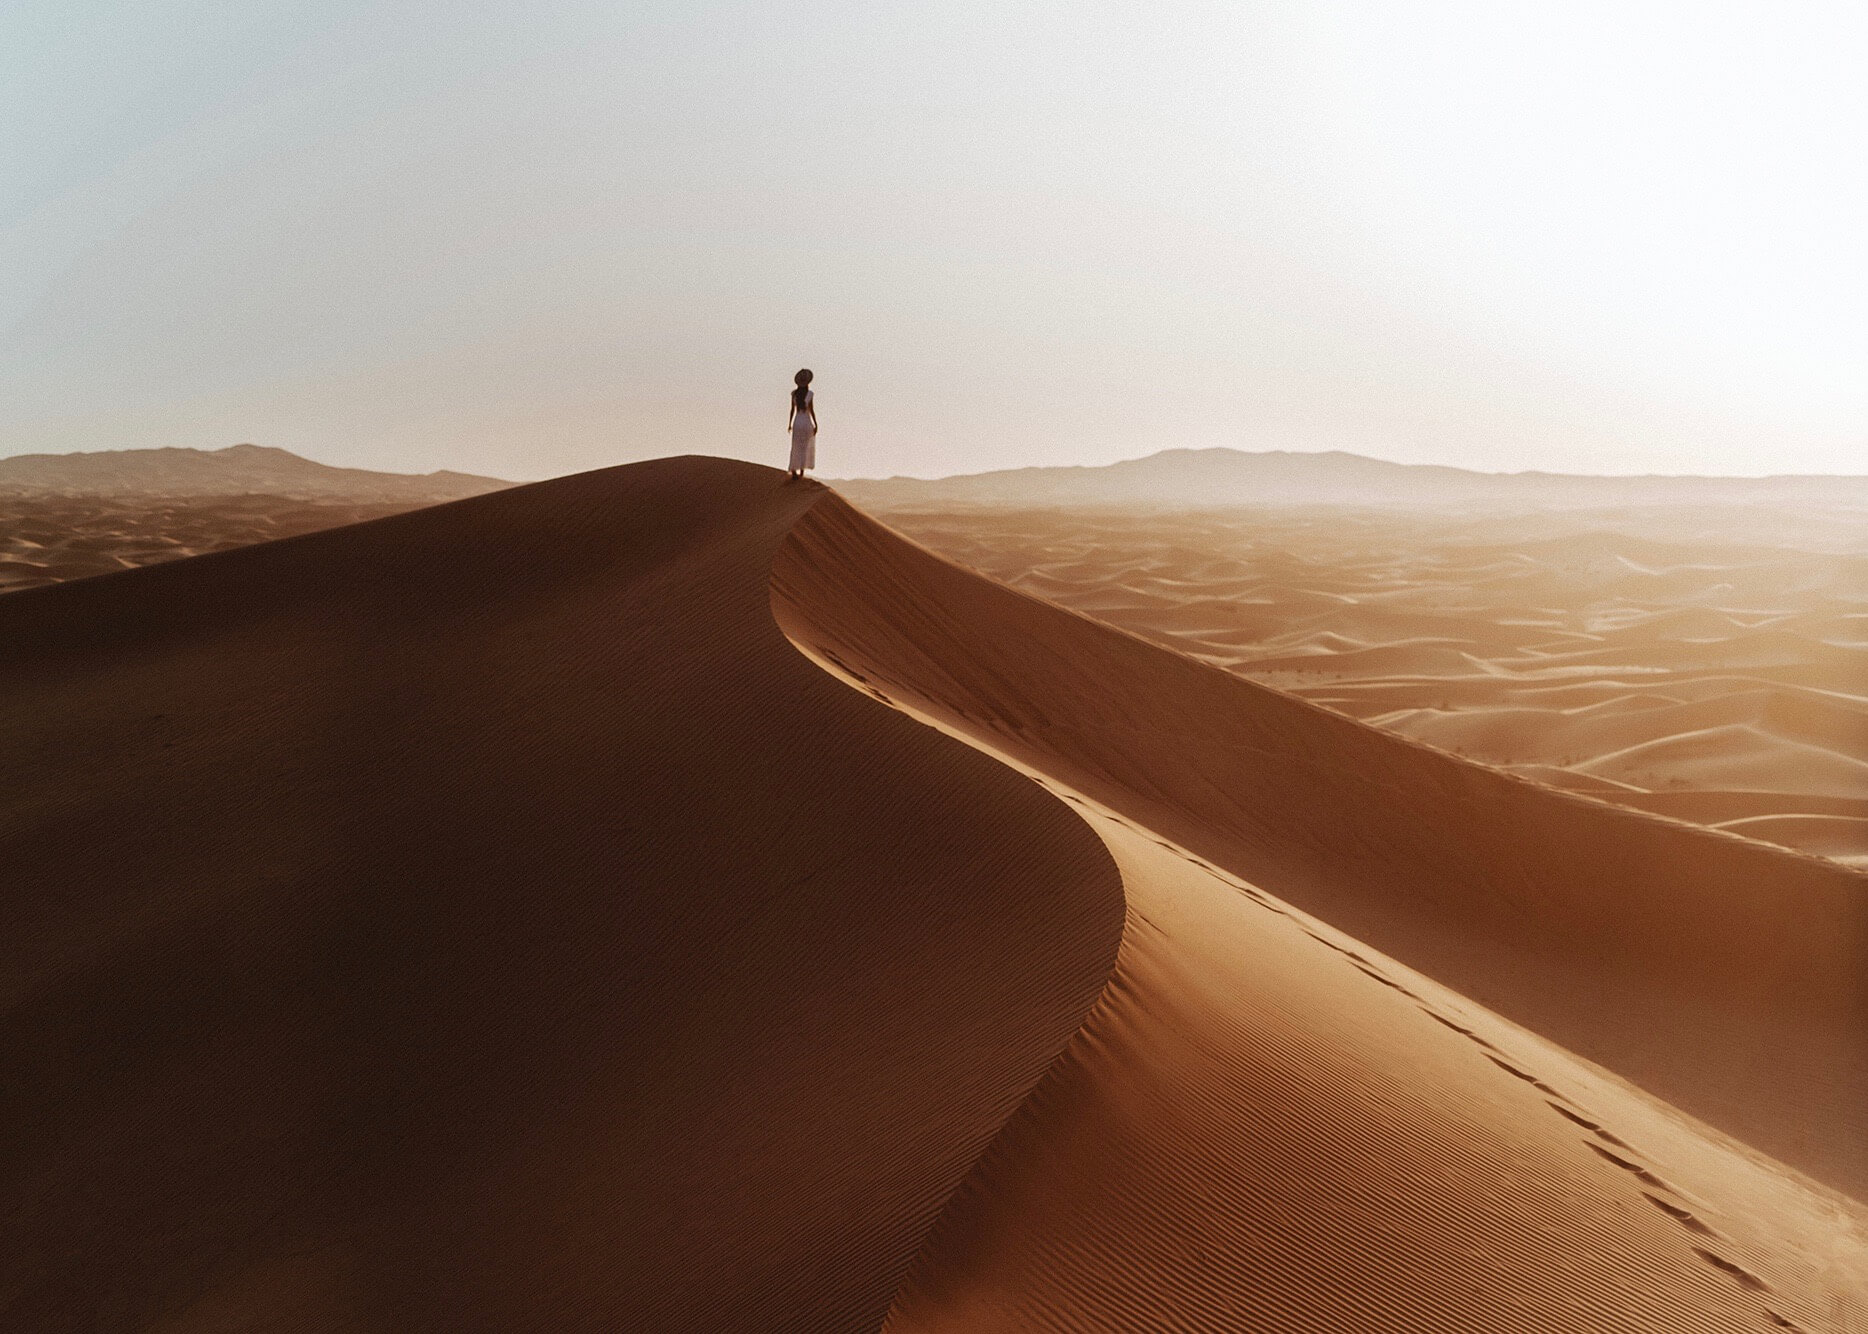 Emilie Ristevski photo of woman standing on top of sand dune facing away from the camera at golden hour